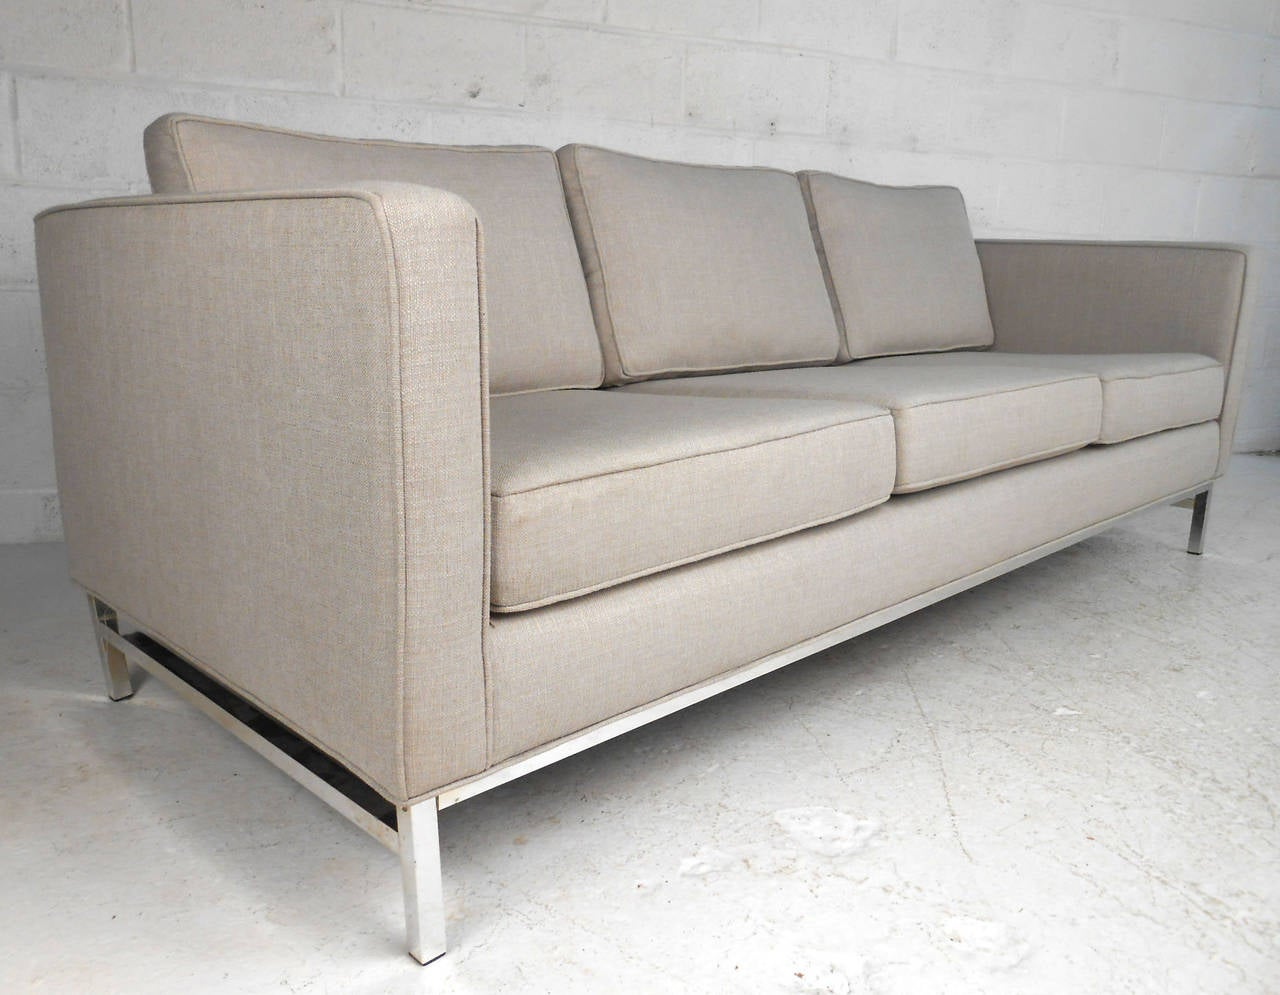 This beautiful chrome frame sofa features wonderful upholstery and fantastic midcentury design. Uniquely long sofa makes a gorgeous addition to any modern setting. Please confirm item location (NY or NJ).